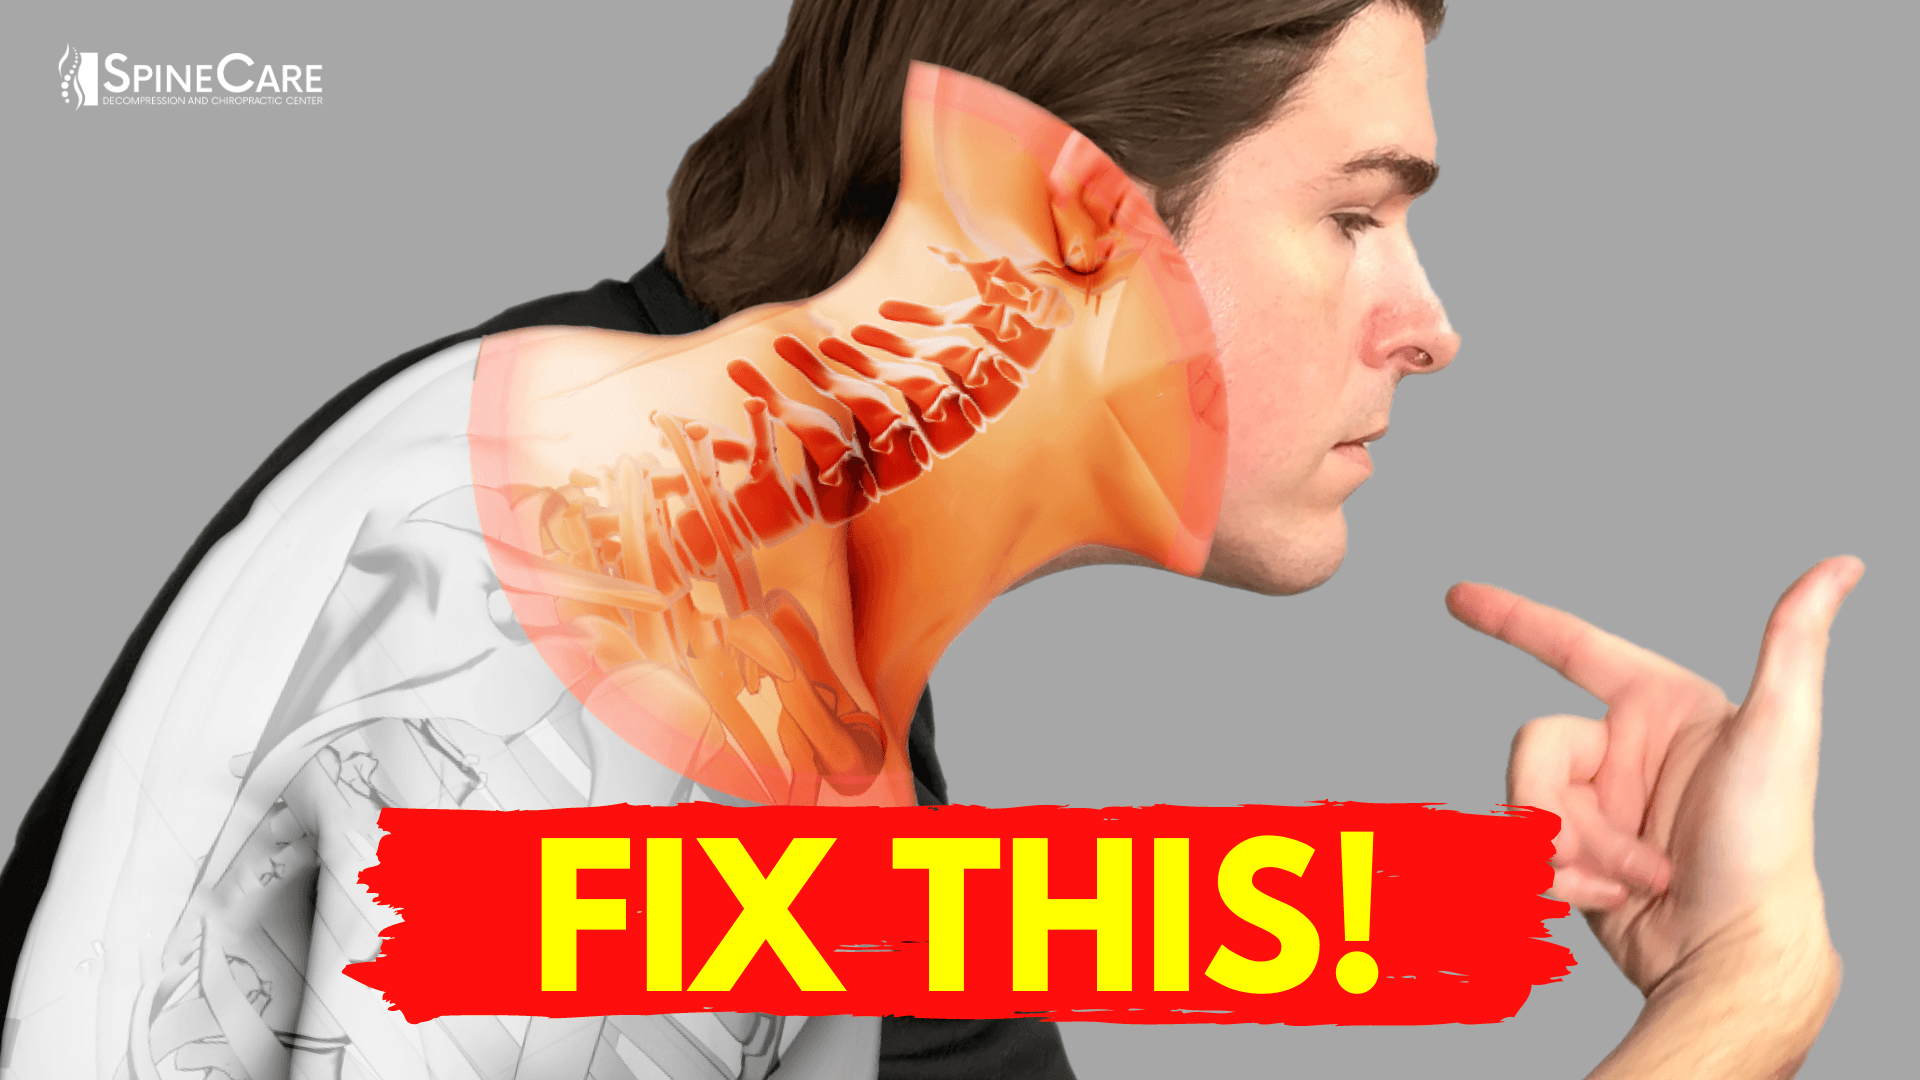 goes over the best ways to get neck bulging disc pain relief AT HOME! | SpineCare | St. Joseph, Michigan Chiropractor